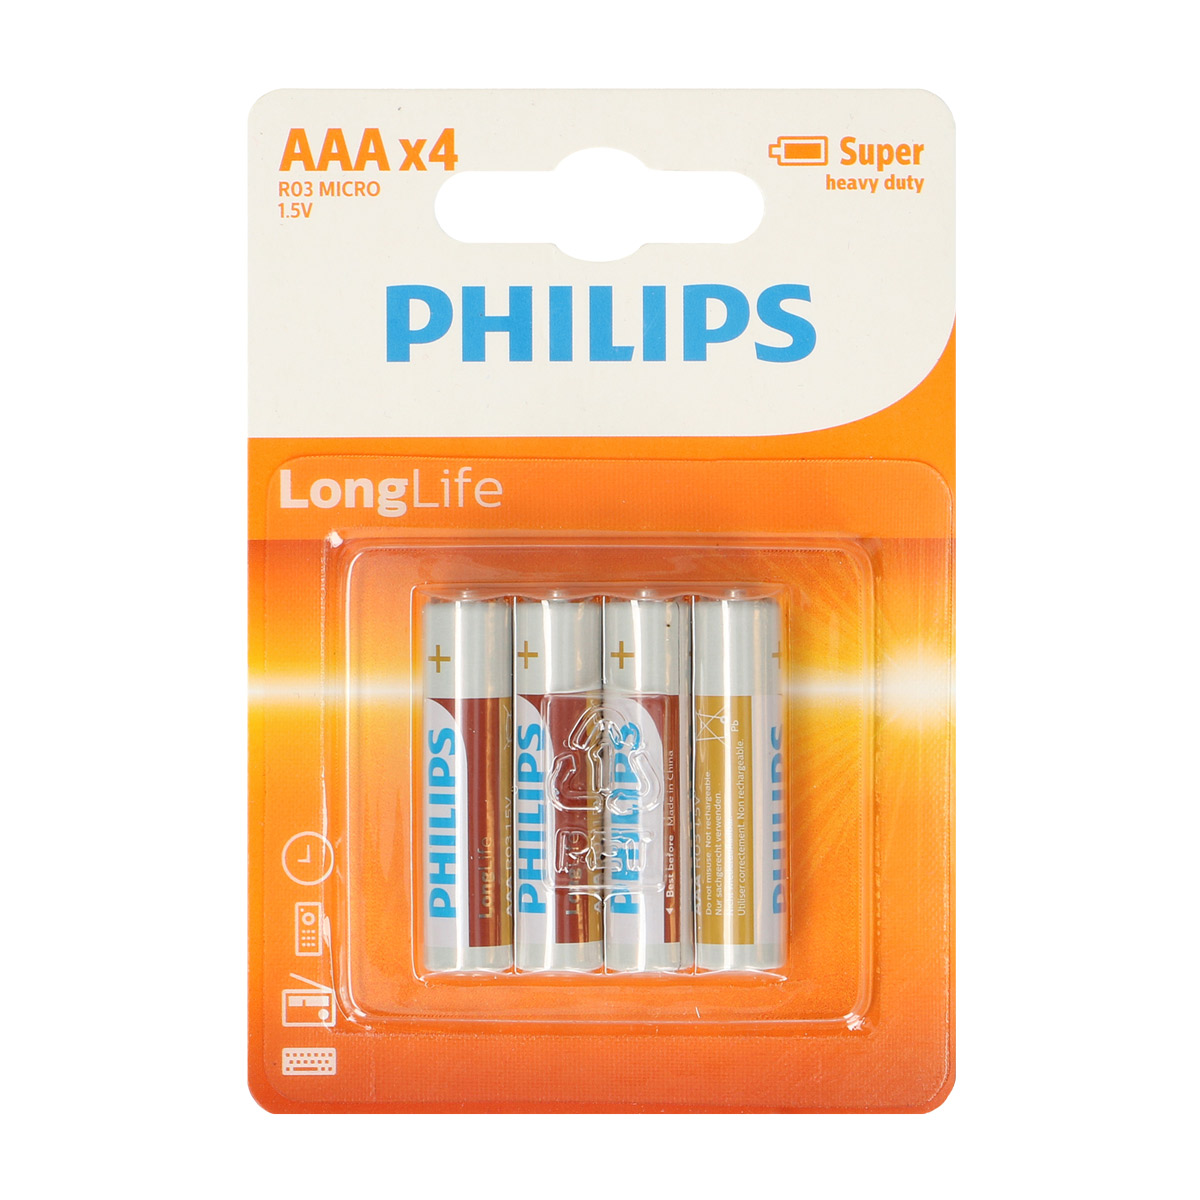 Baterie Philips AAA LongLife, 4 kusy